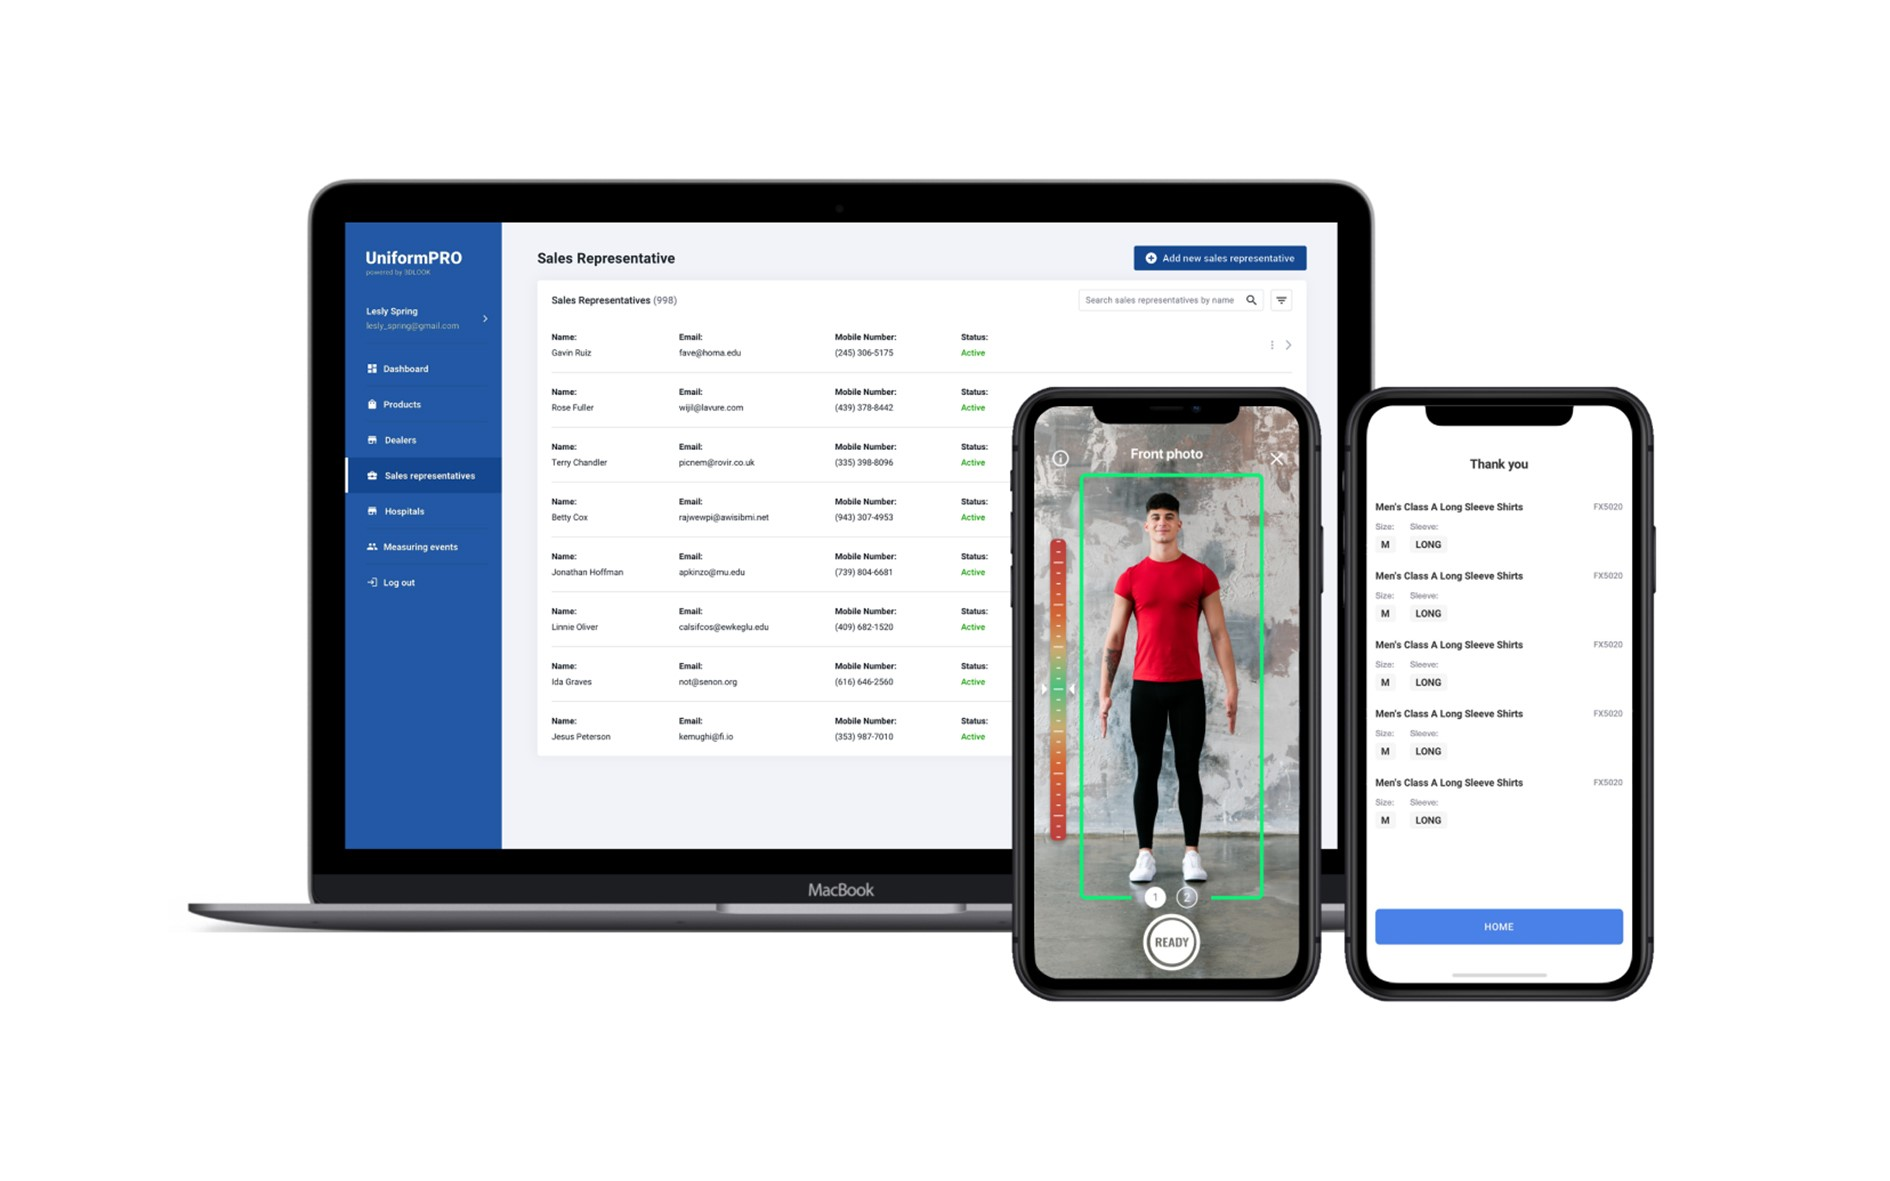 3DLOOK, the global leader in AI-first mobile body measuring and fit solutions, has announced that it has raised $6.5 million in Series A funding, led by Almaz Capital with participation from TMT Investments and Zubr Capital.